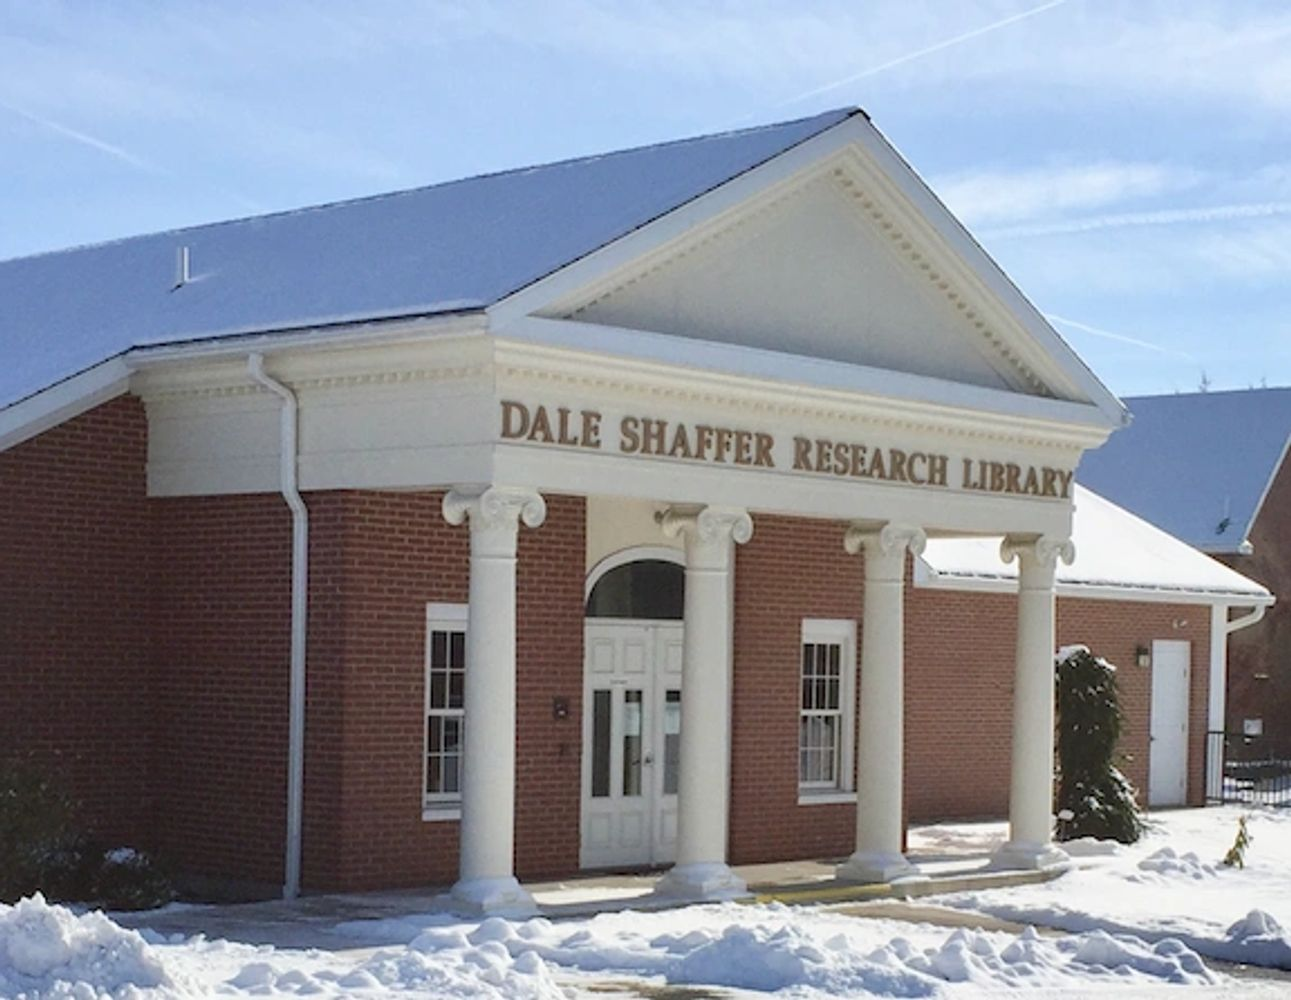 Dale Shaffer Research Library